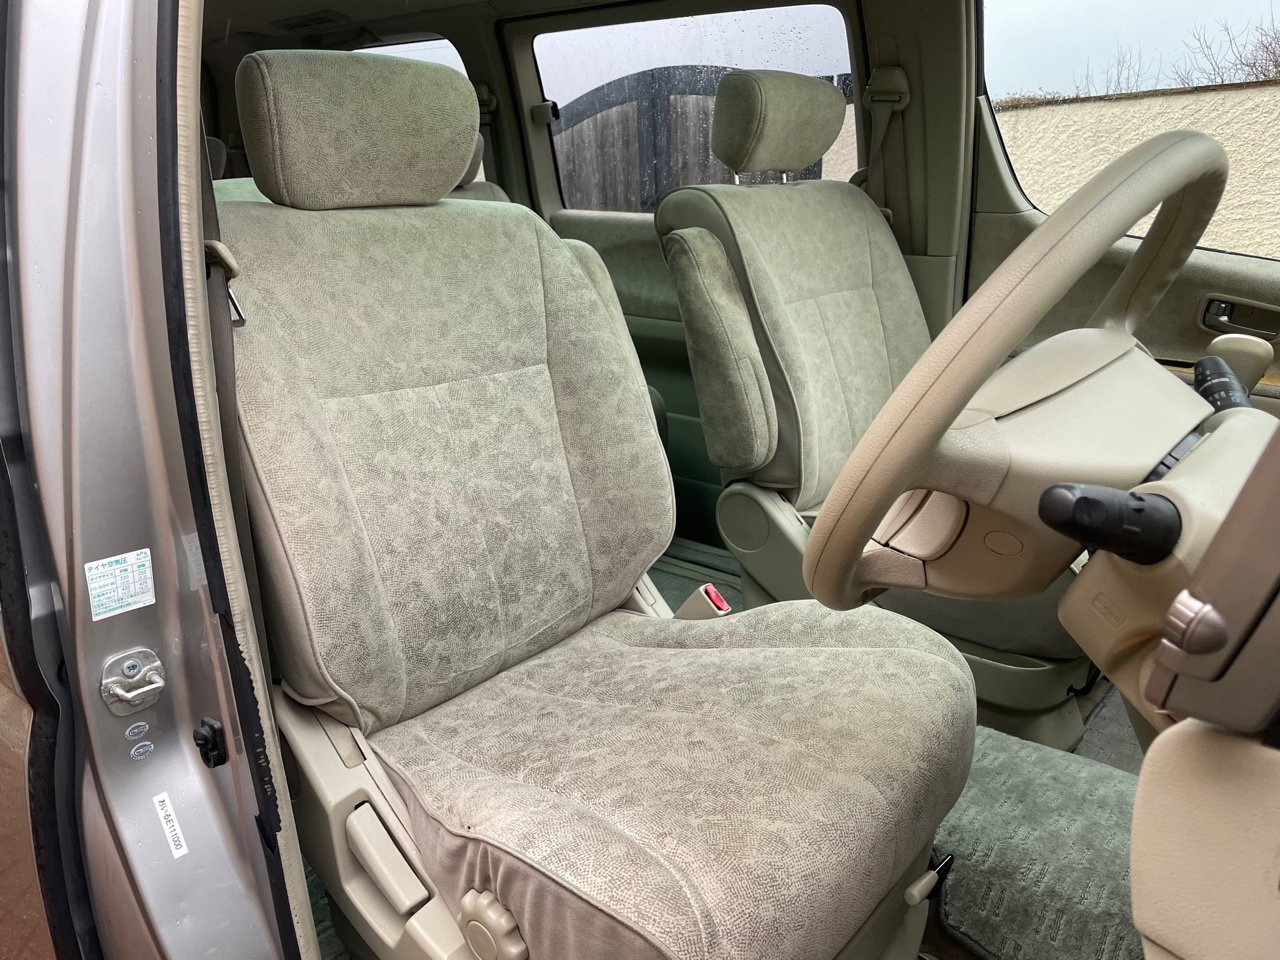 2004 NISSAN ELGRAND 3.5 AUTOMATIC 70TH * TWIN SUNROOF * CUSTOM For Sale (picture 3 of 6)